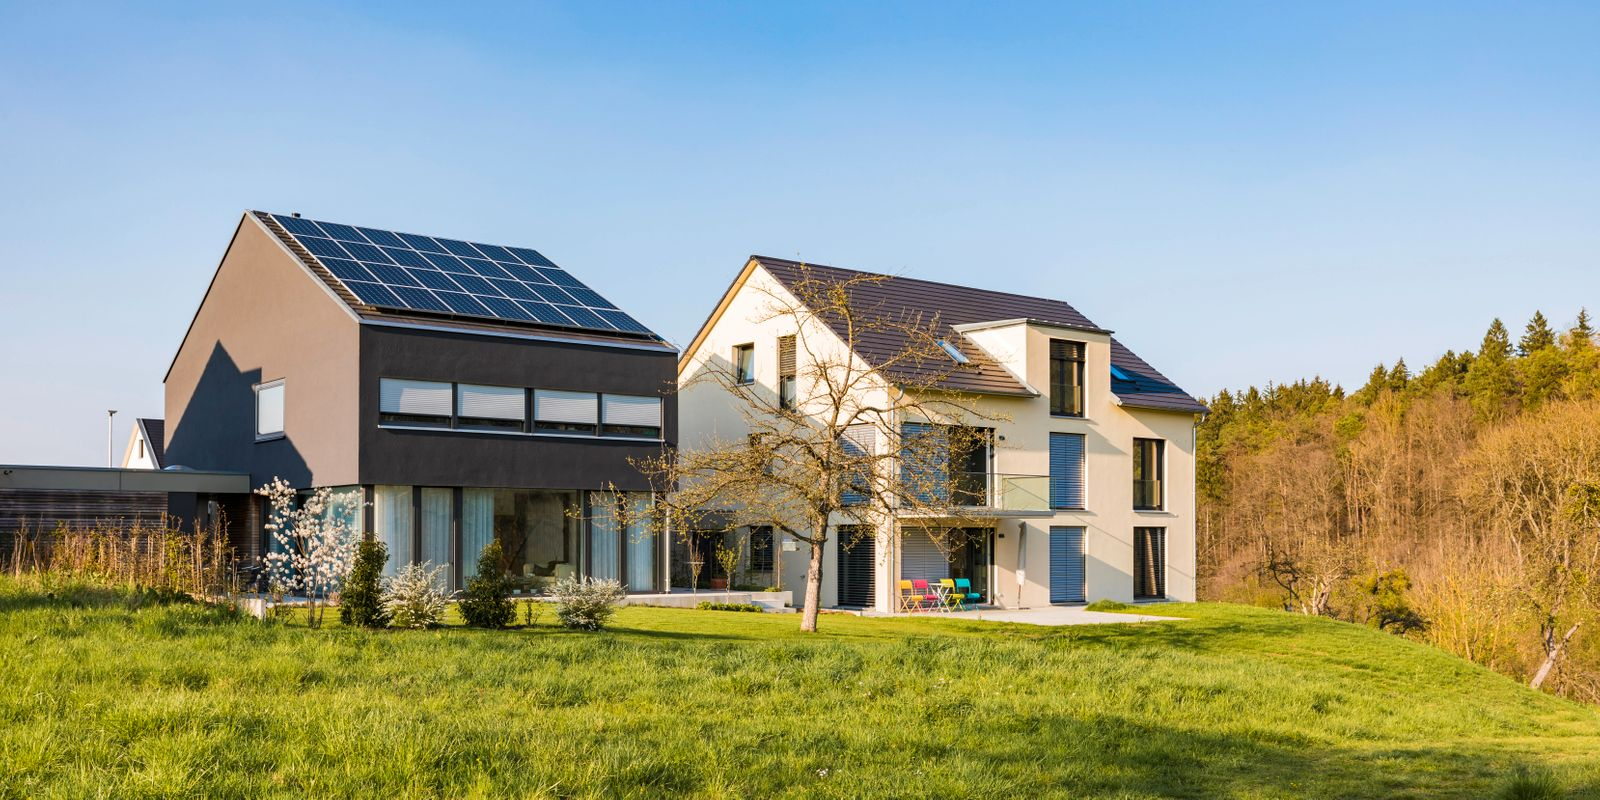 Germany, Nuertingen, modern one-family houses with solar roof